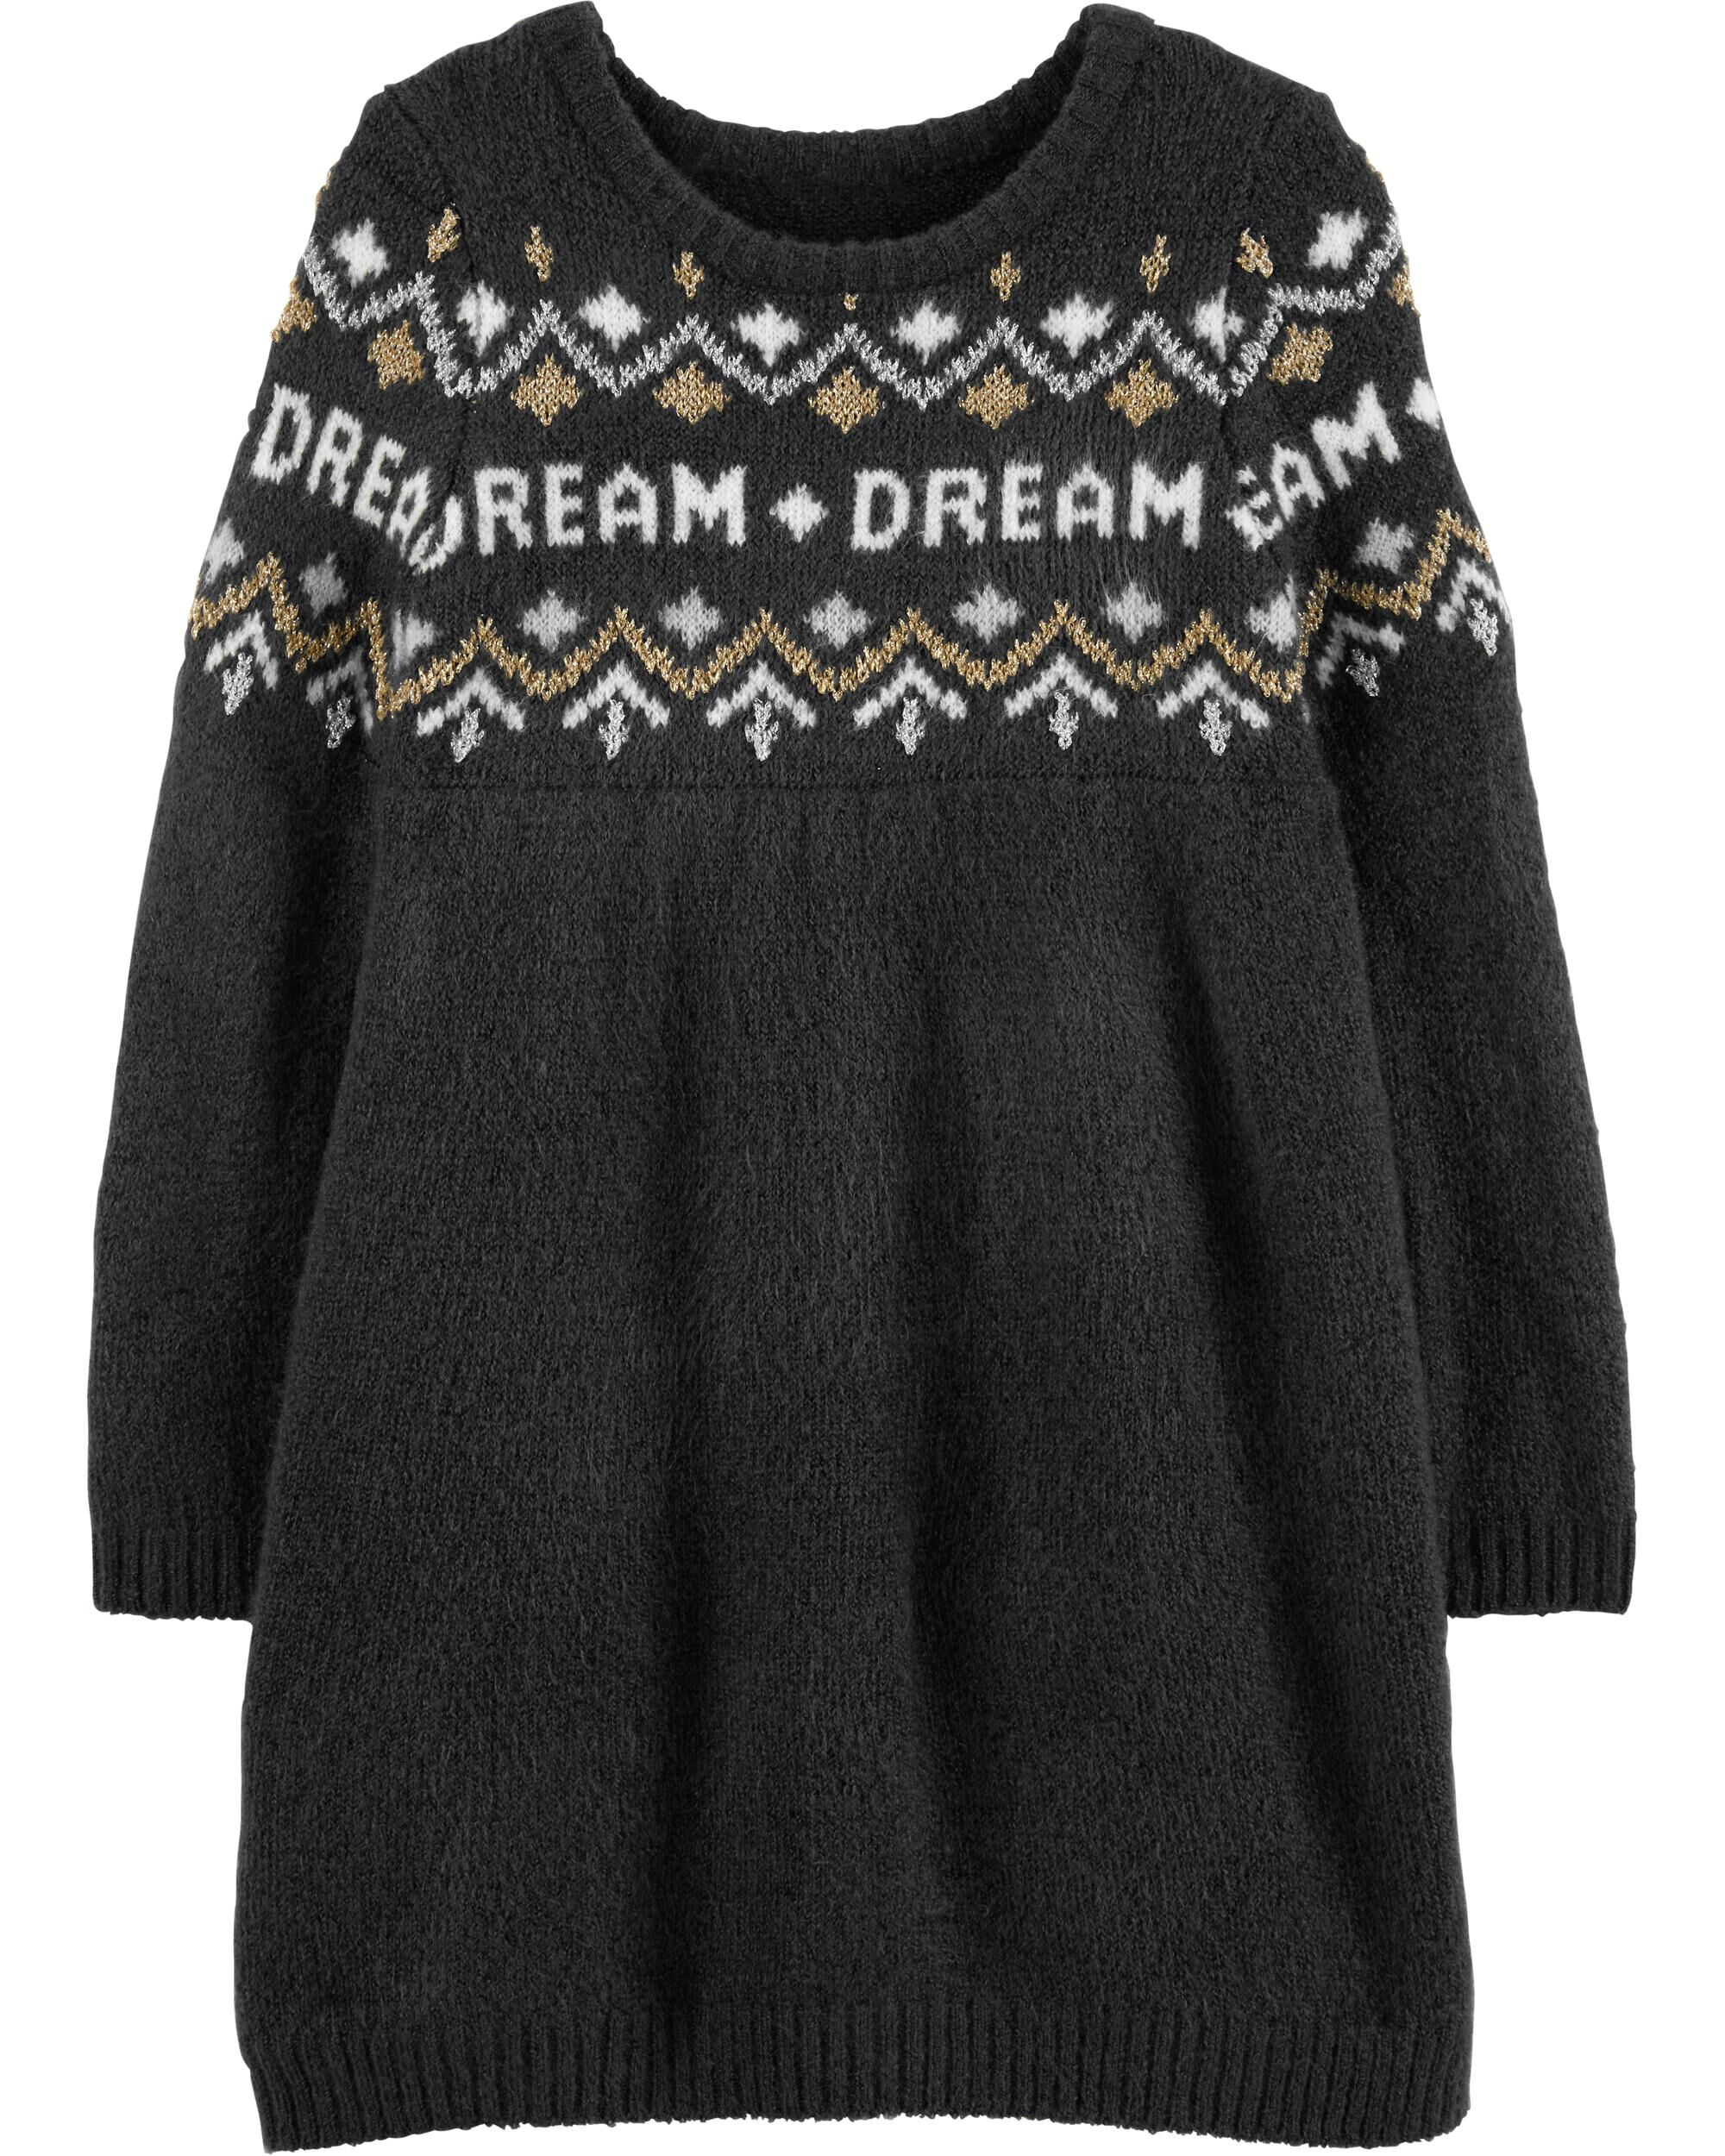 *Clearance*  Glitter Dream Sweater Dress